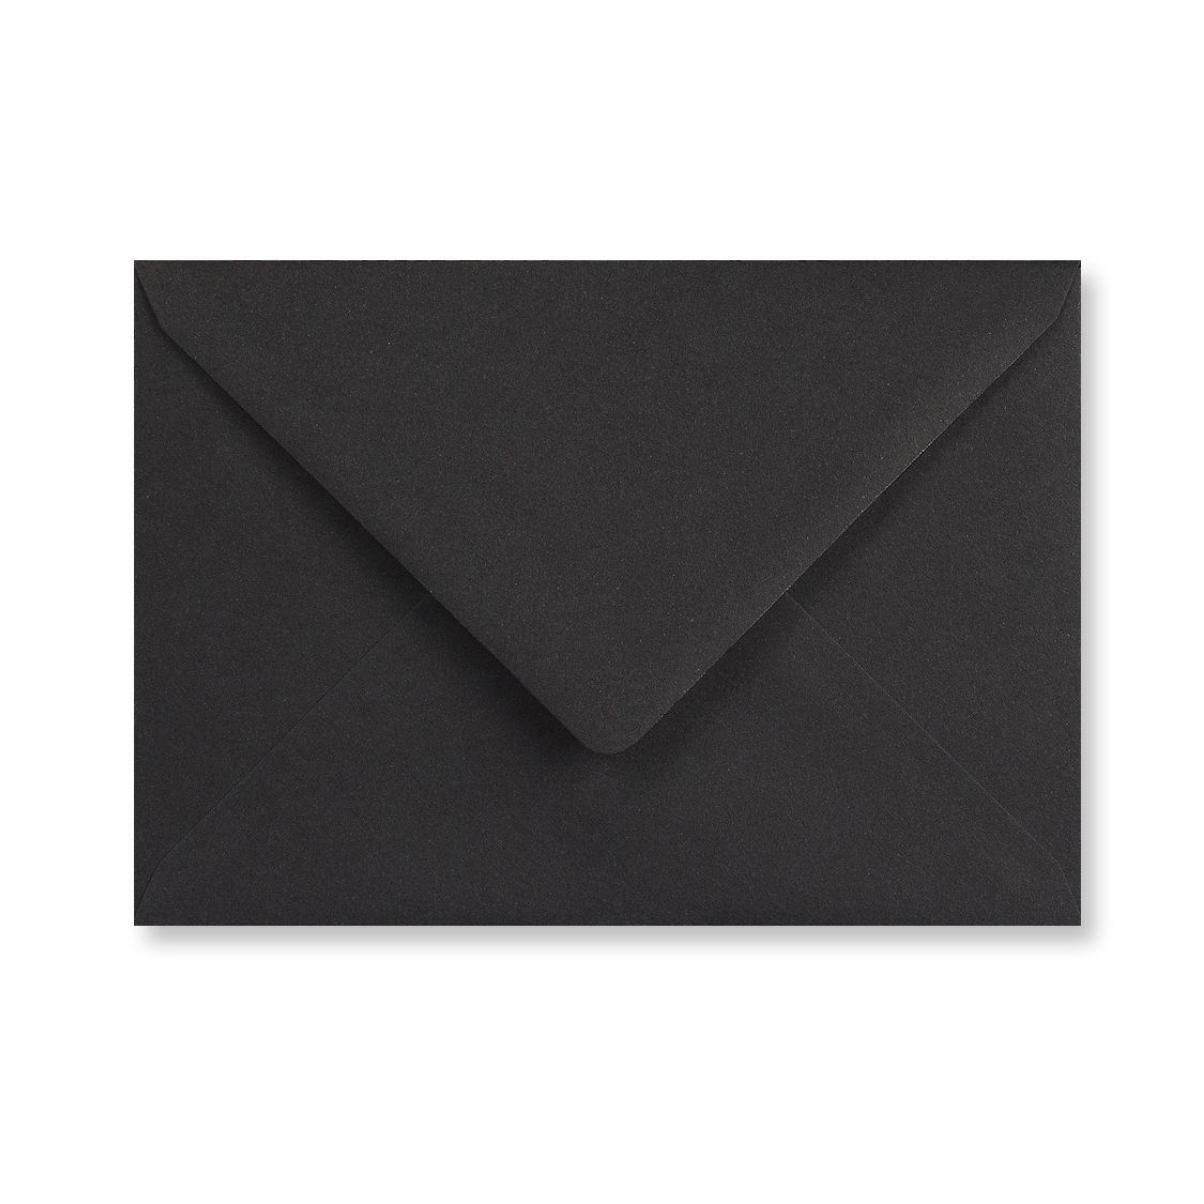 HT_Black Envelope